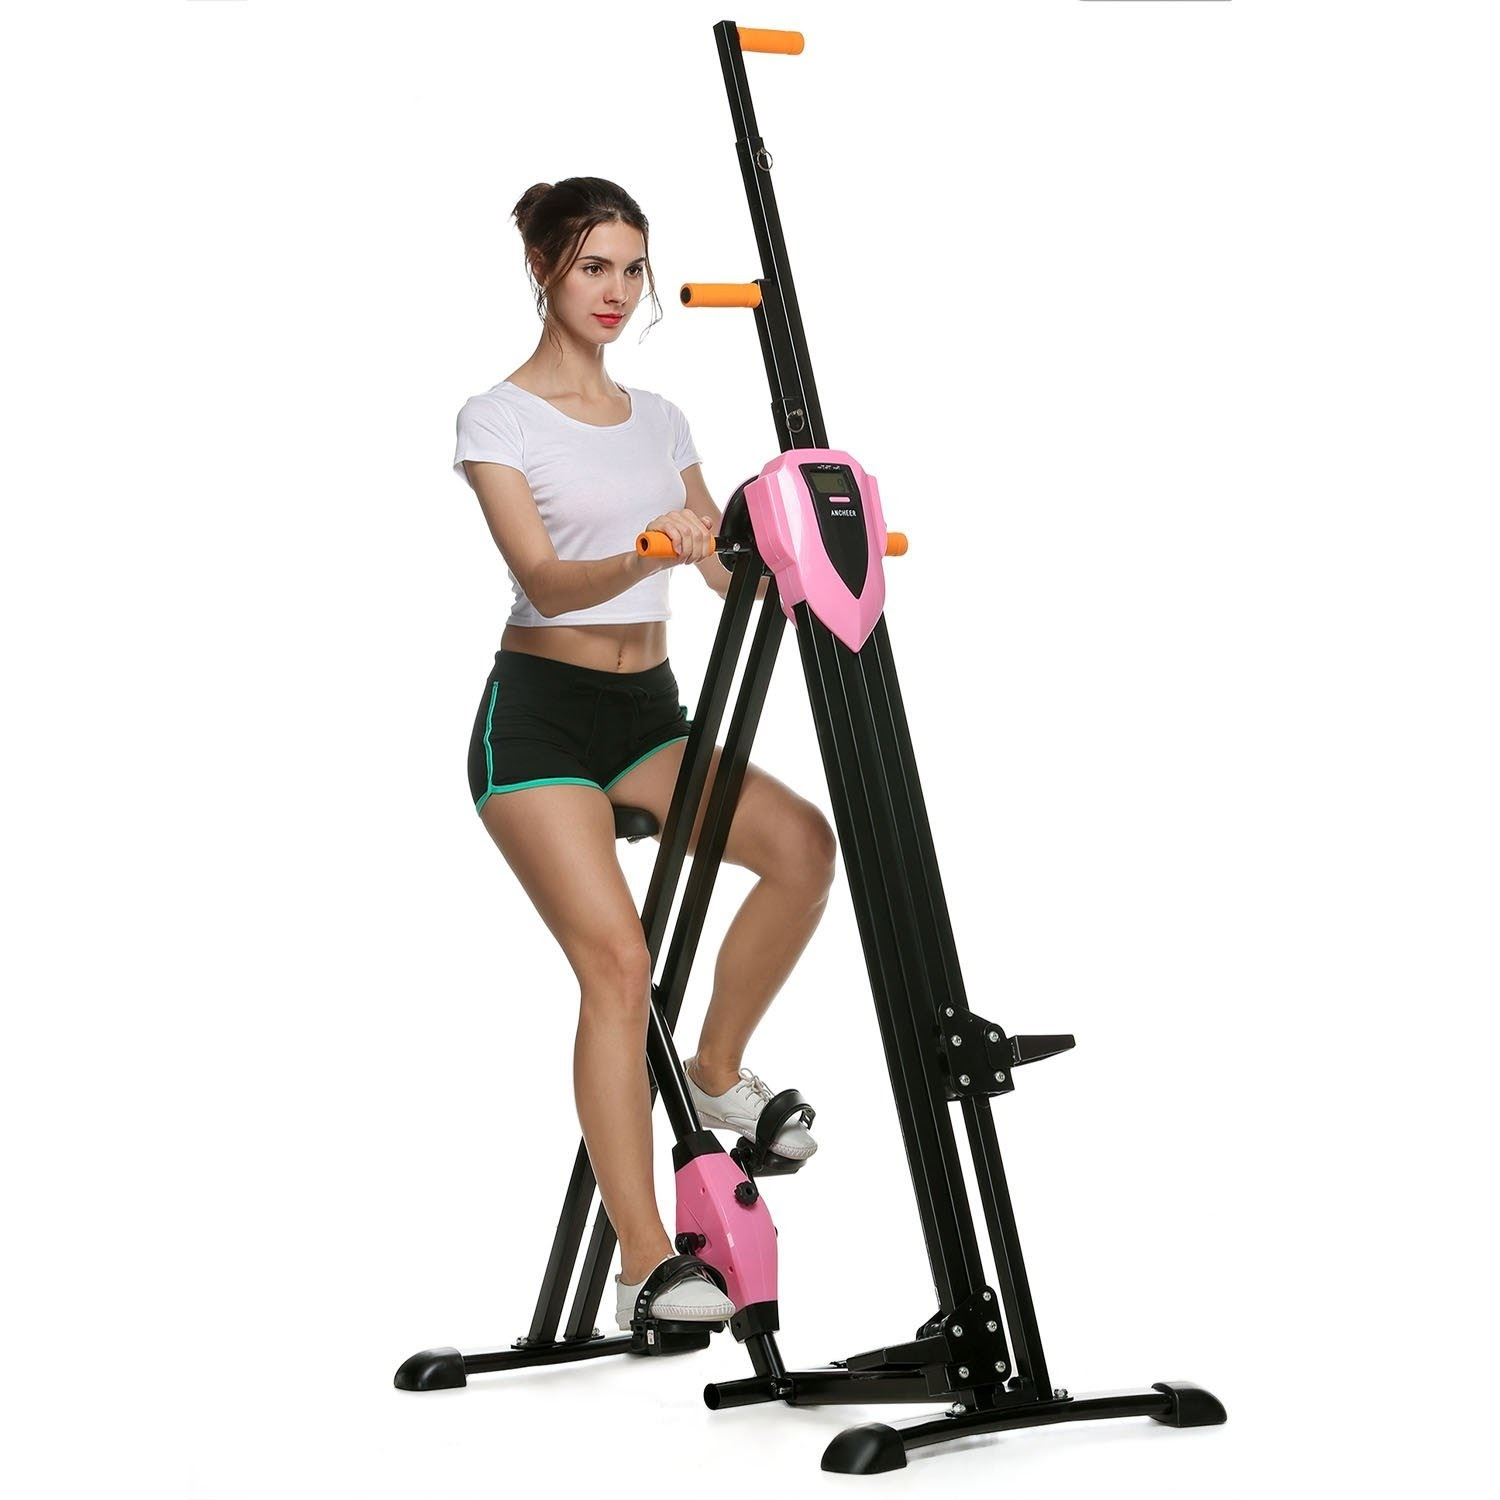 Advantages Of Using An Exercise Bike